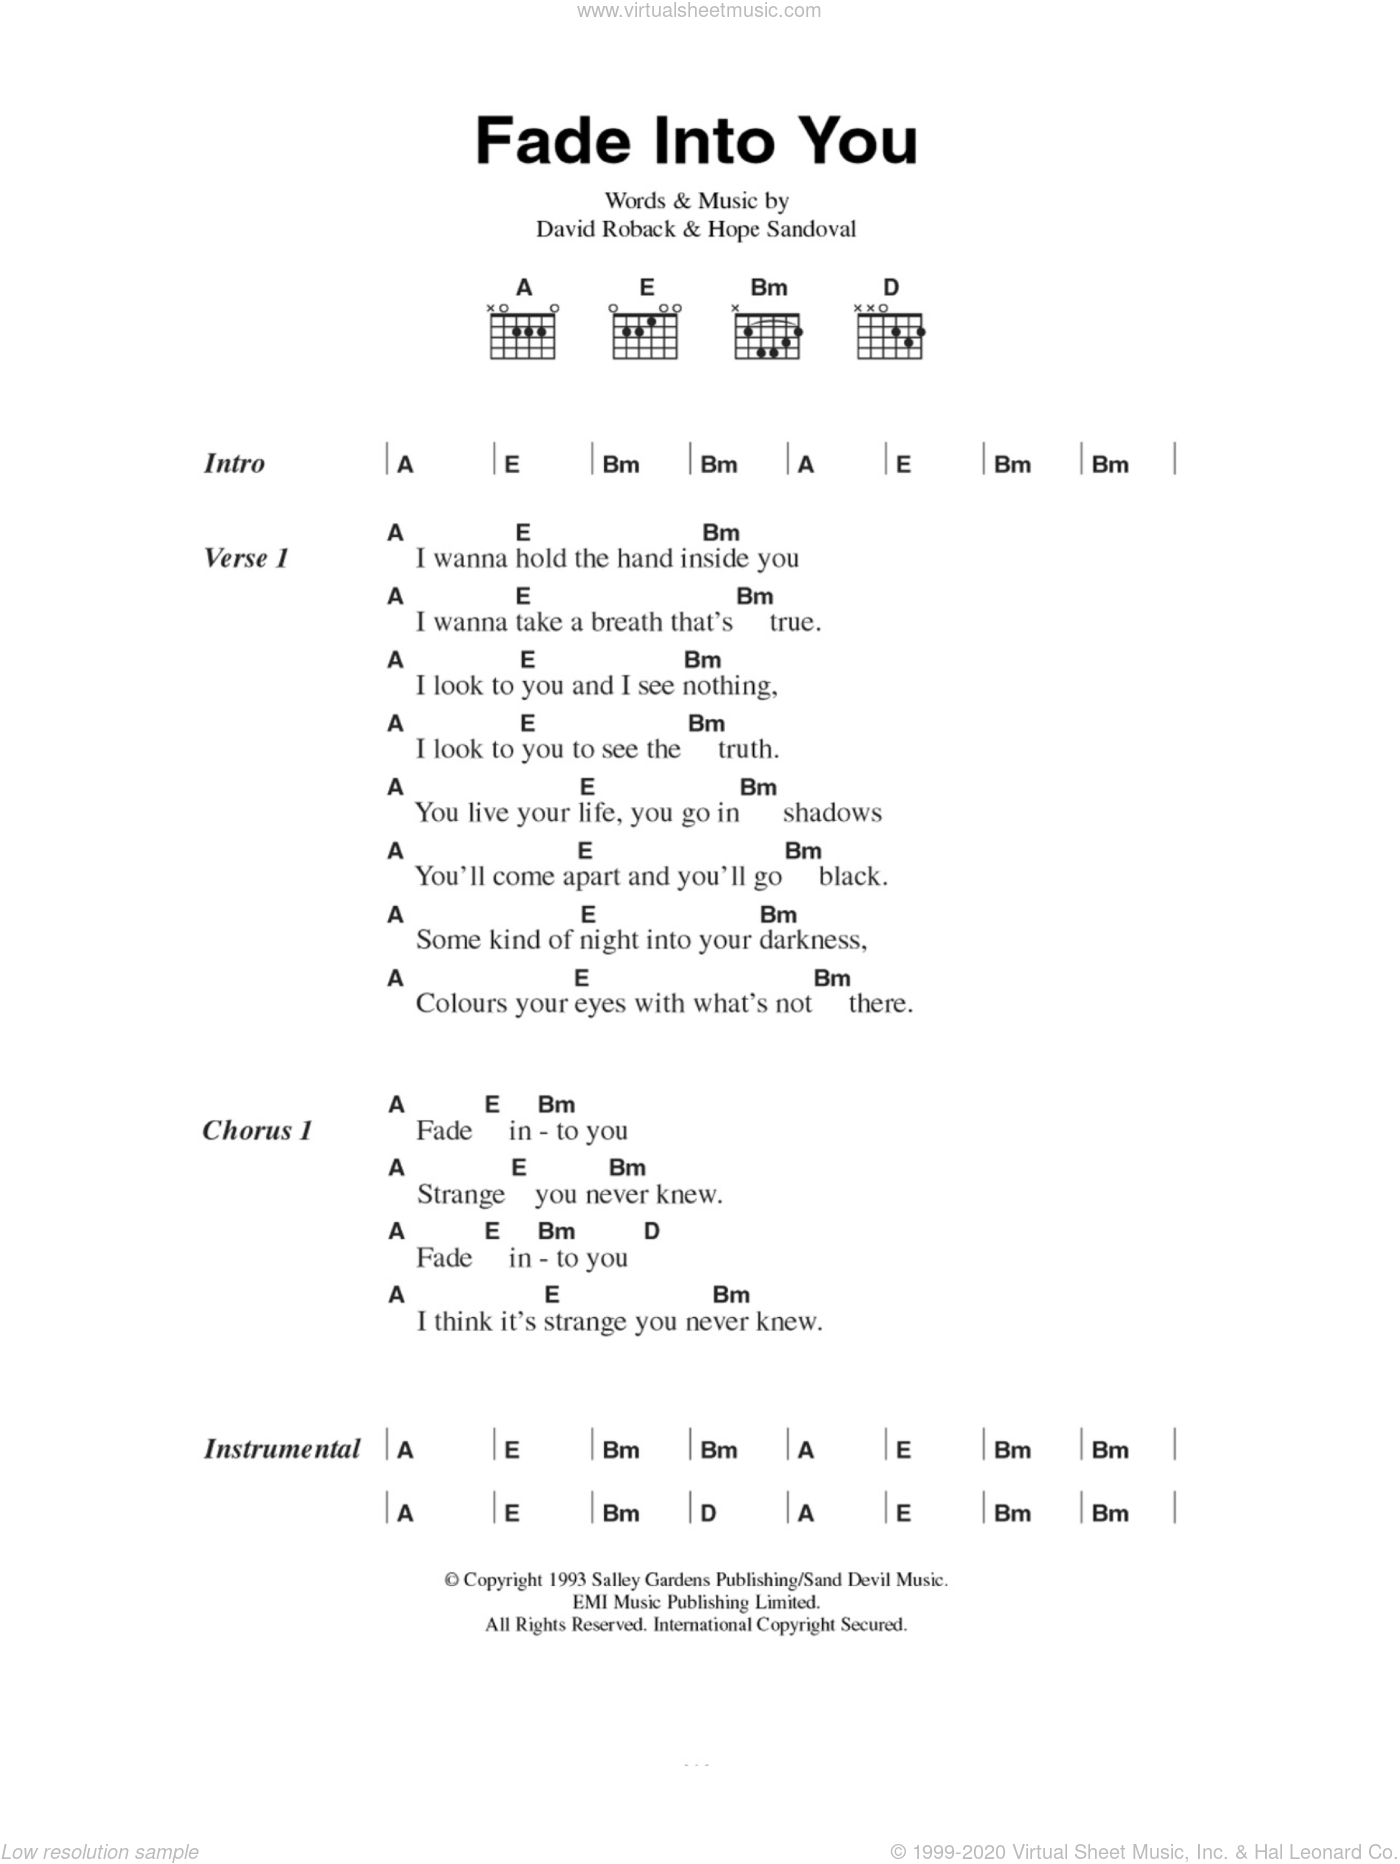 Fade Into You sheet music for guitar (chords) by Hope Sandoval